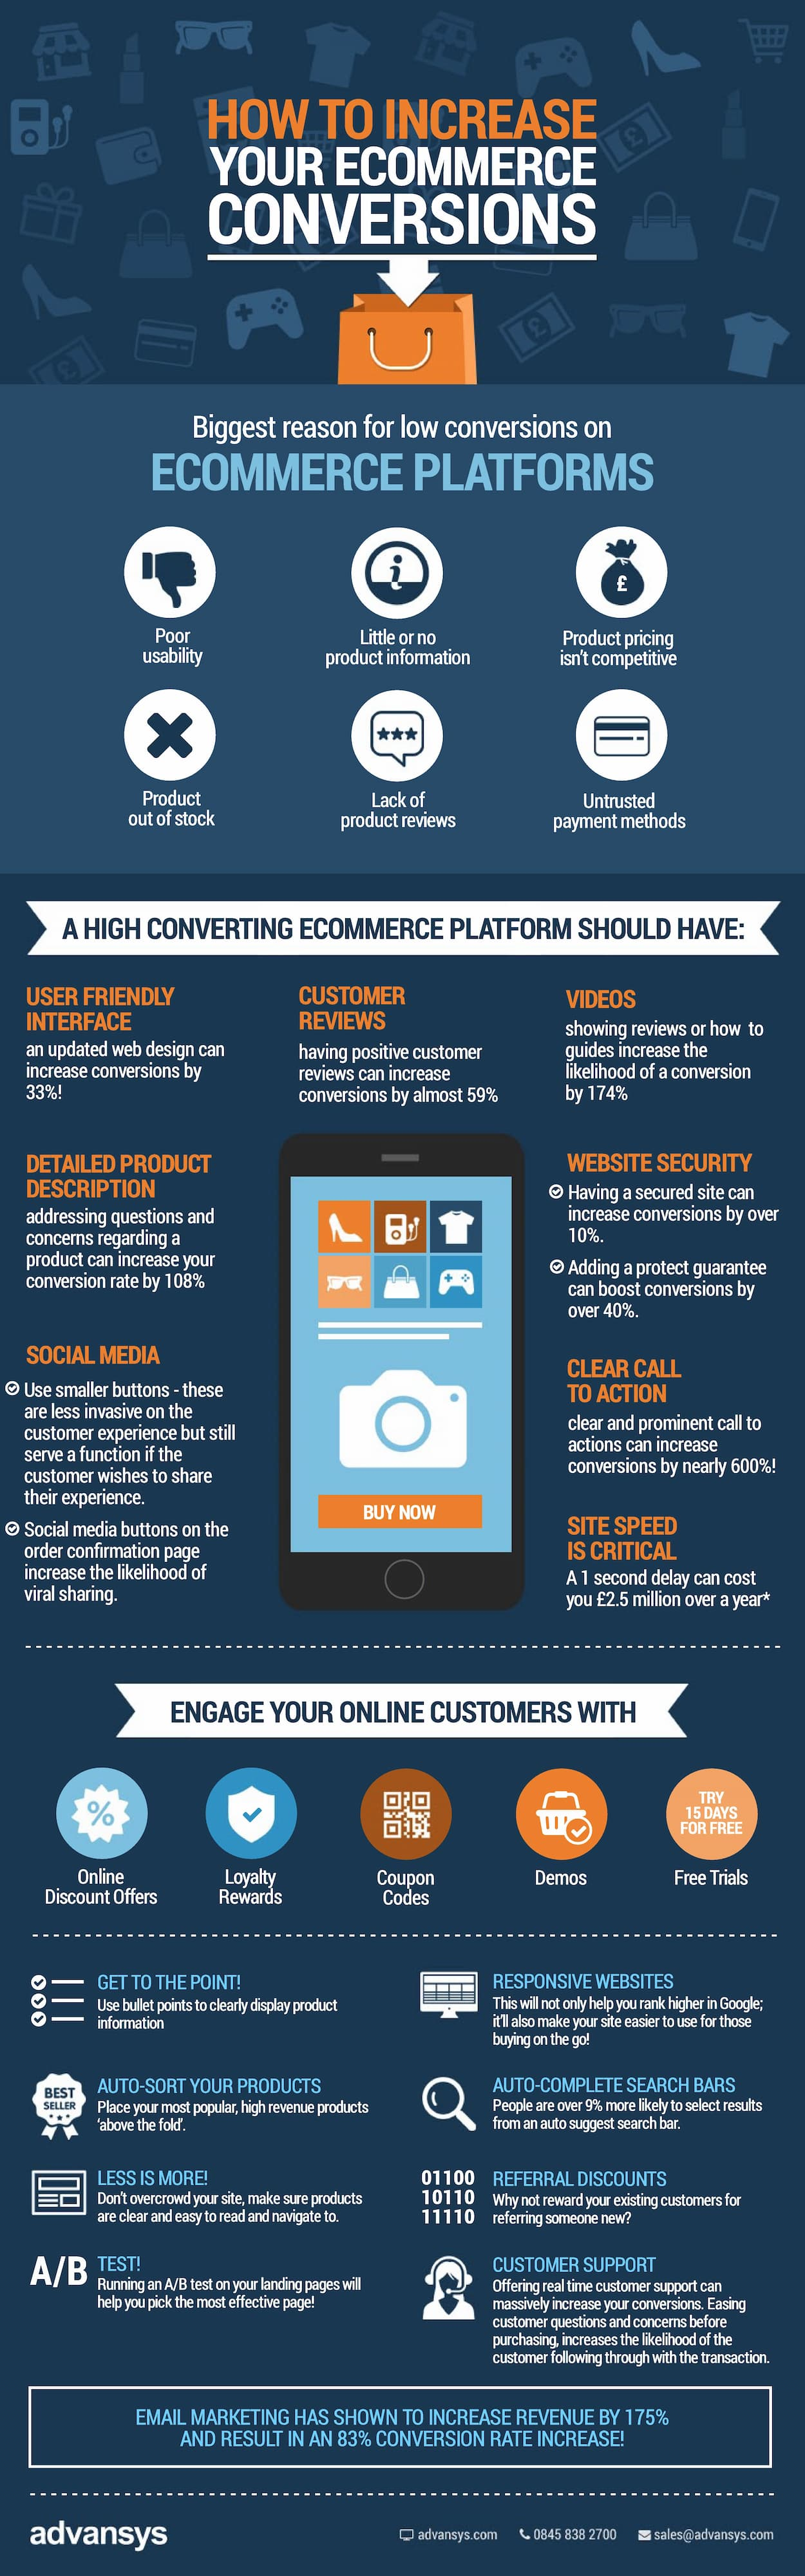 How to increase eCommerce conversions.jpg